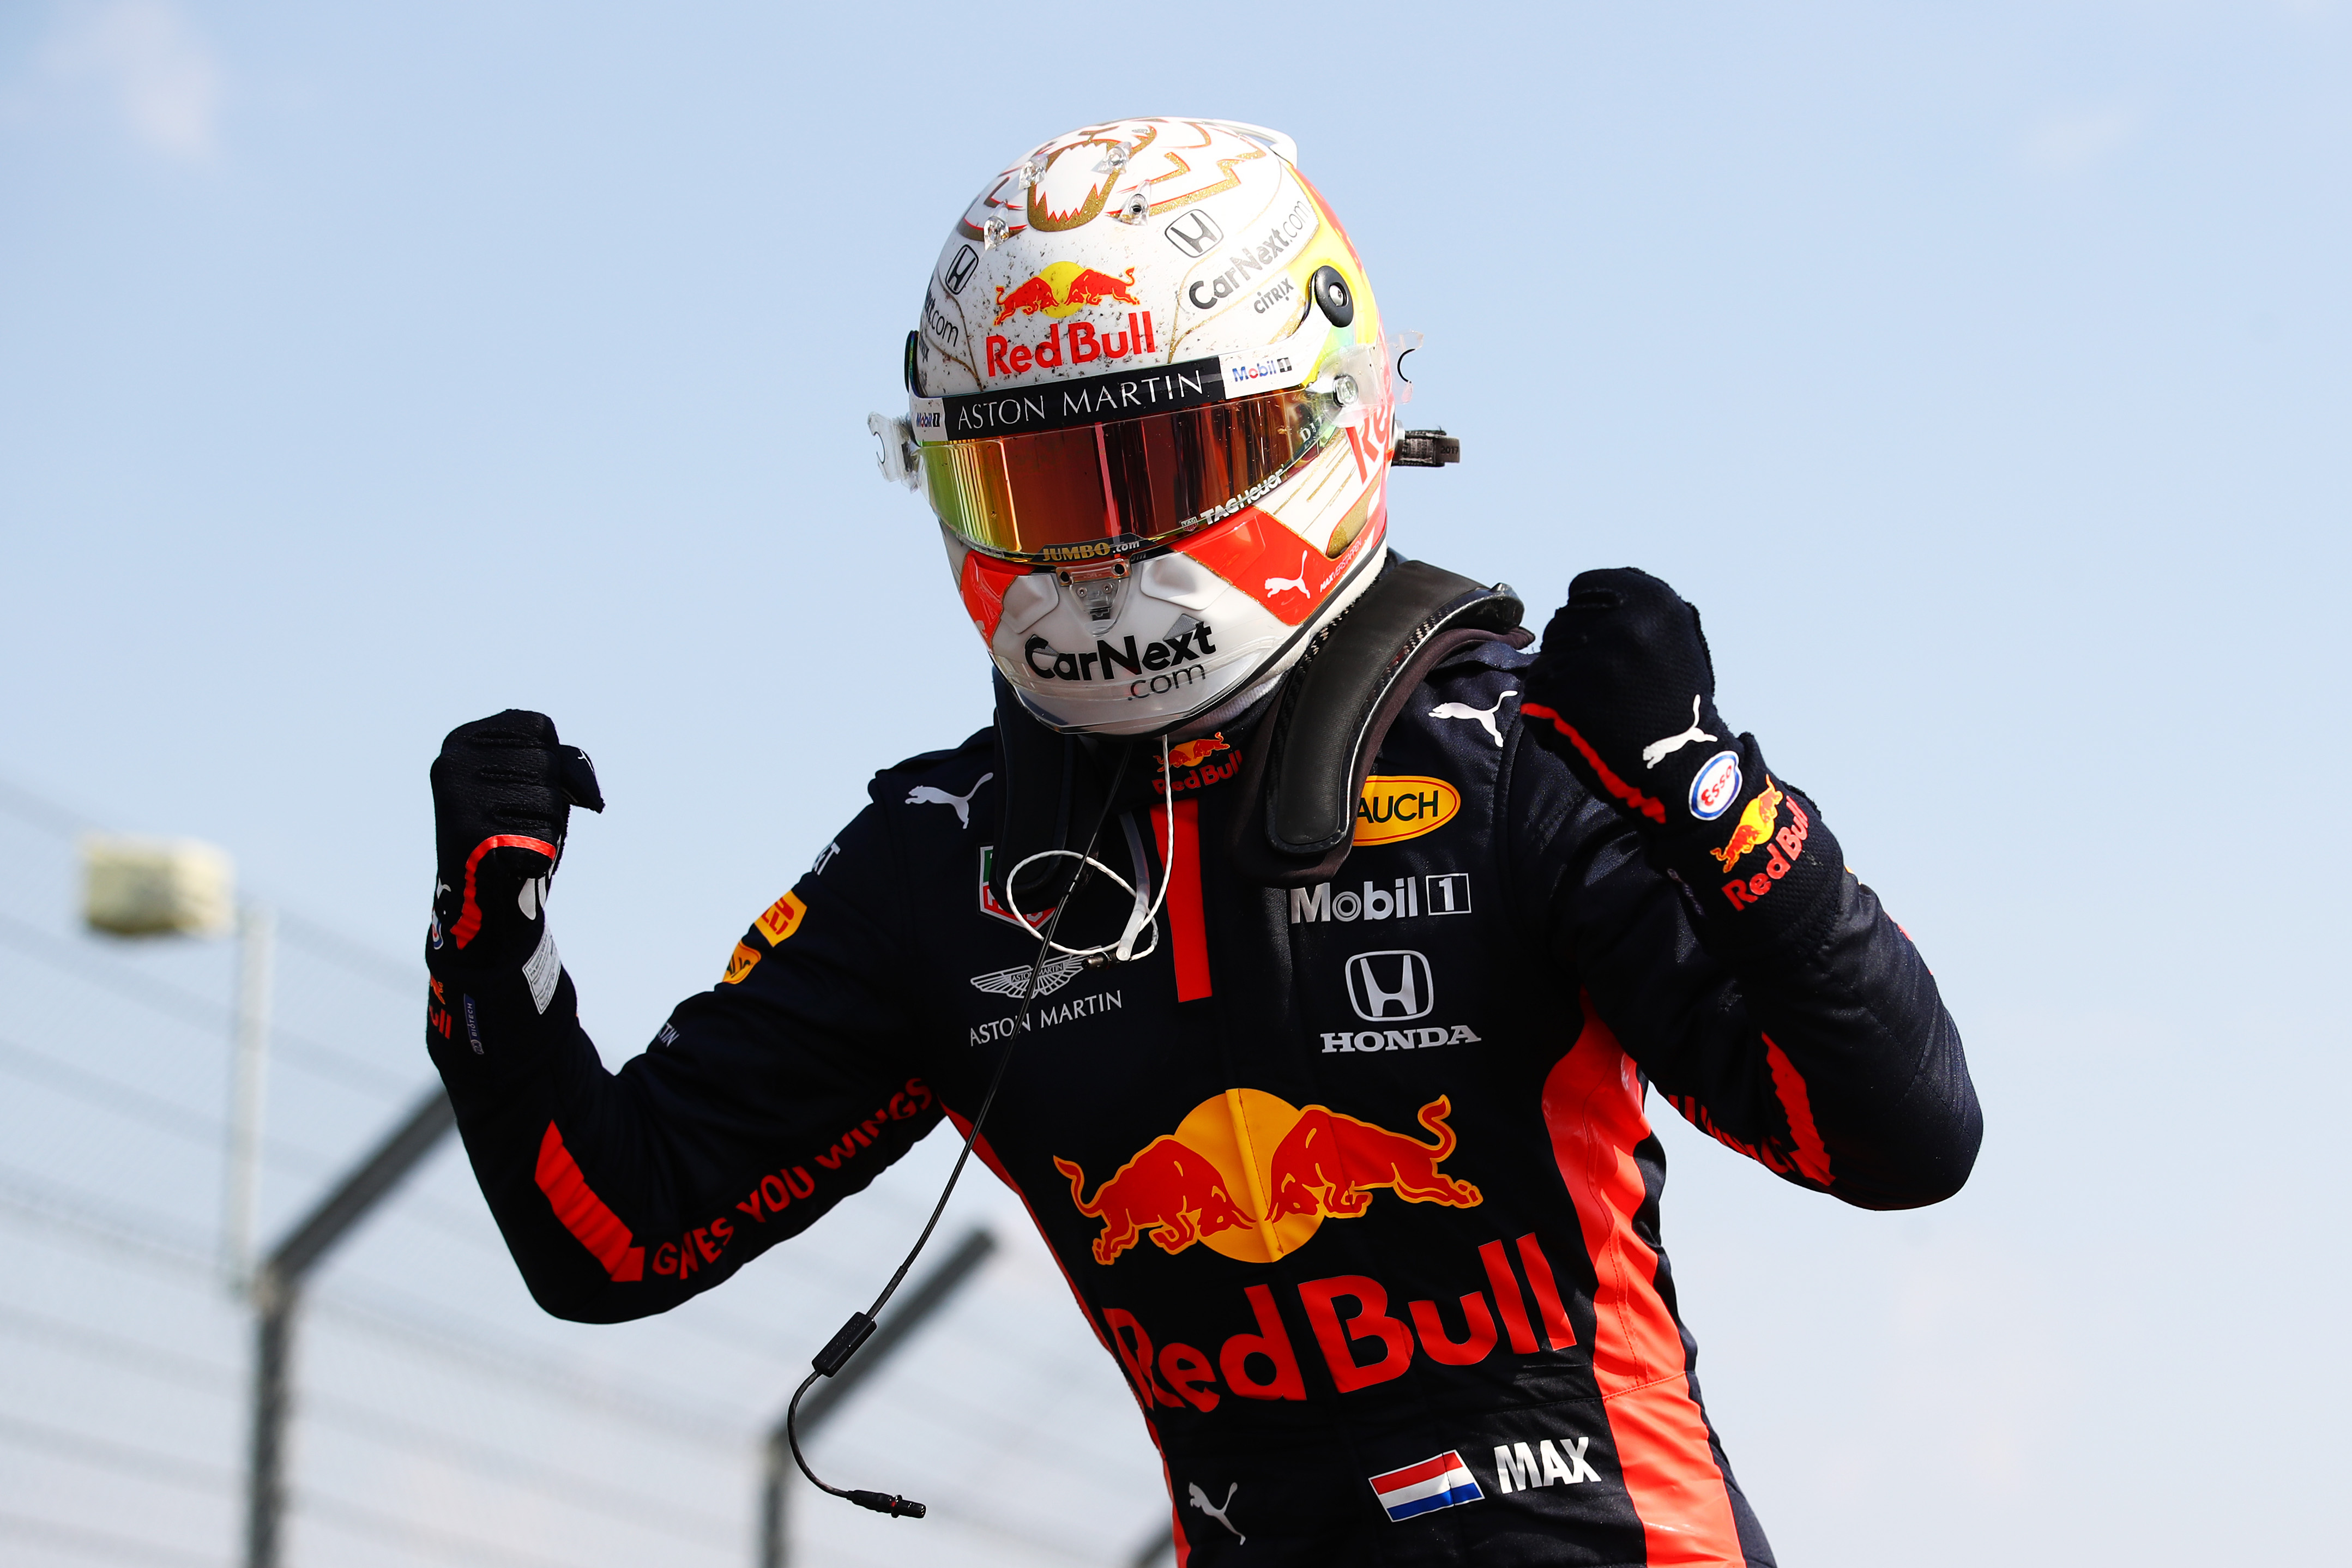 Verstappen outfoxes Mercedes duo to win 70th Anniversary Grand Prix